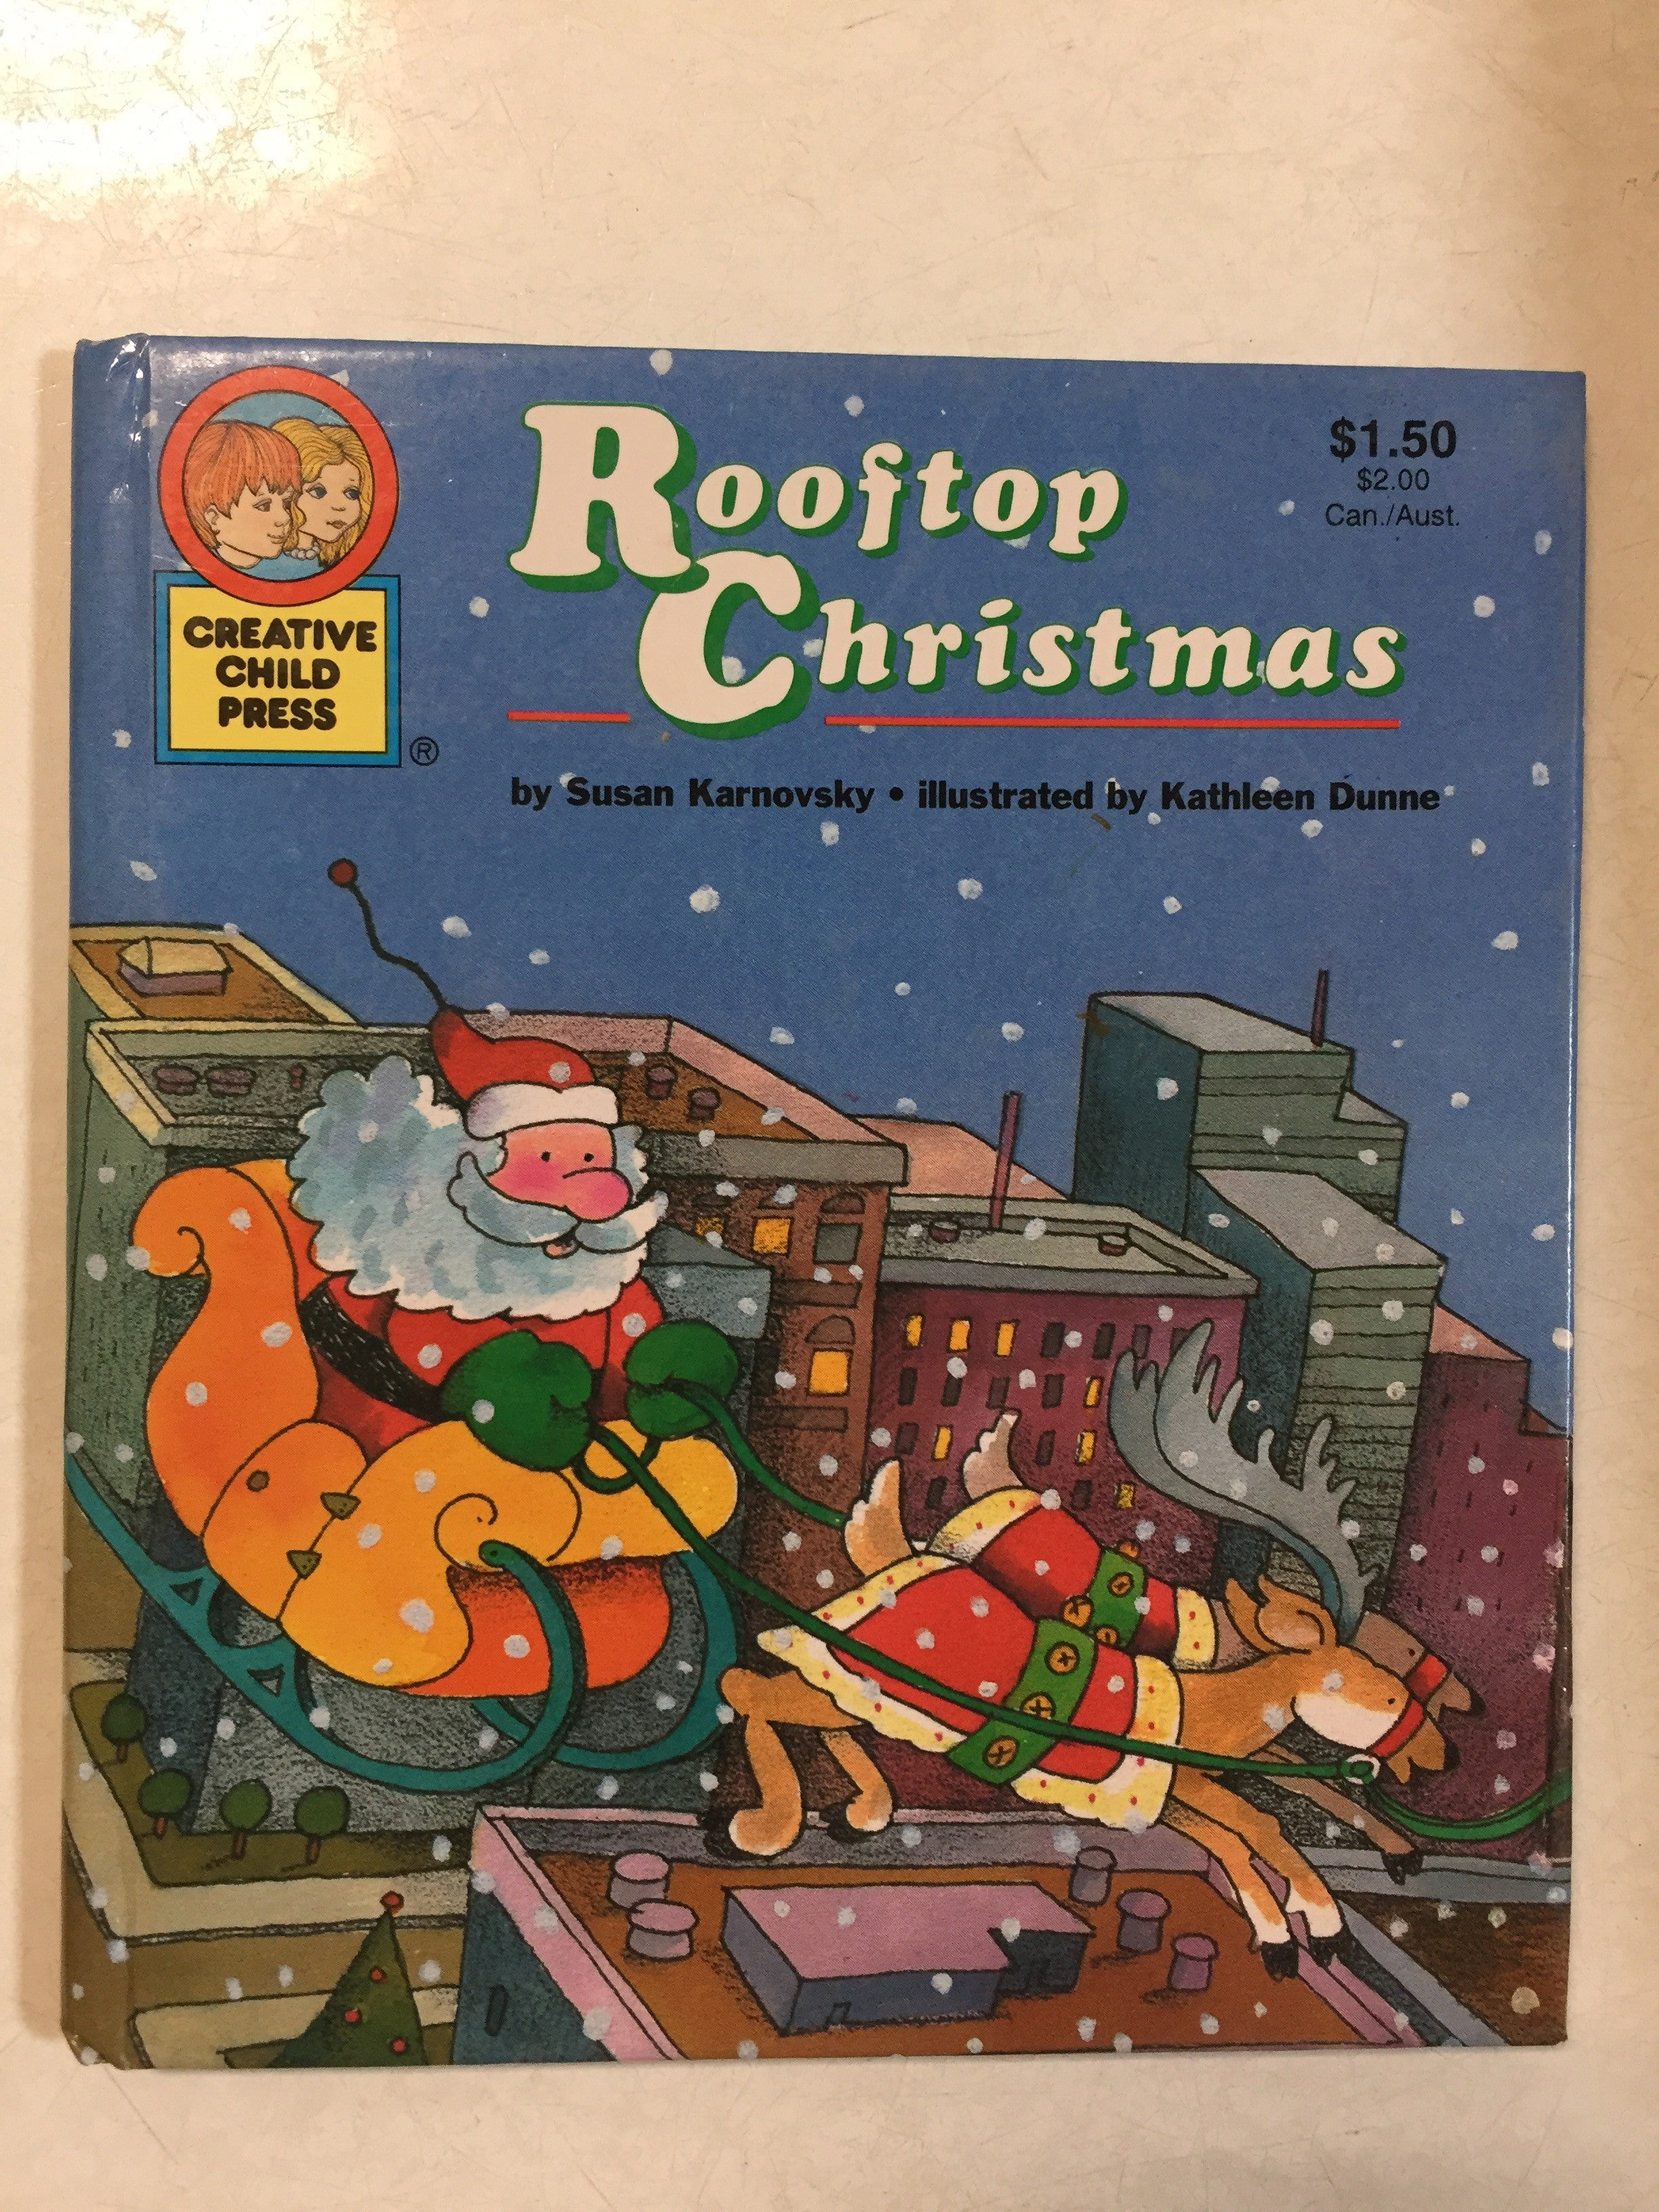 Rooftop Christmas